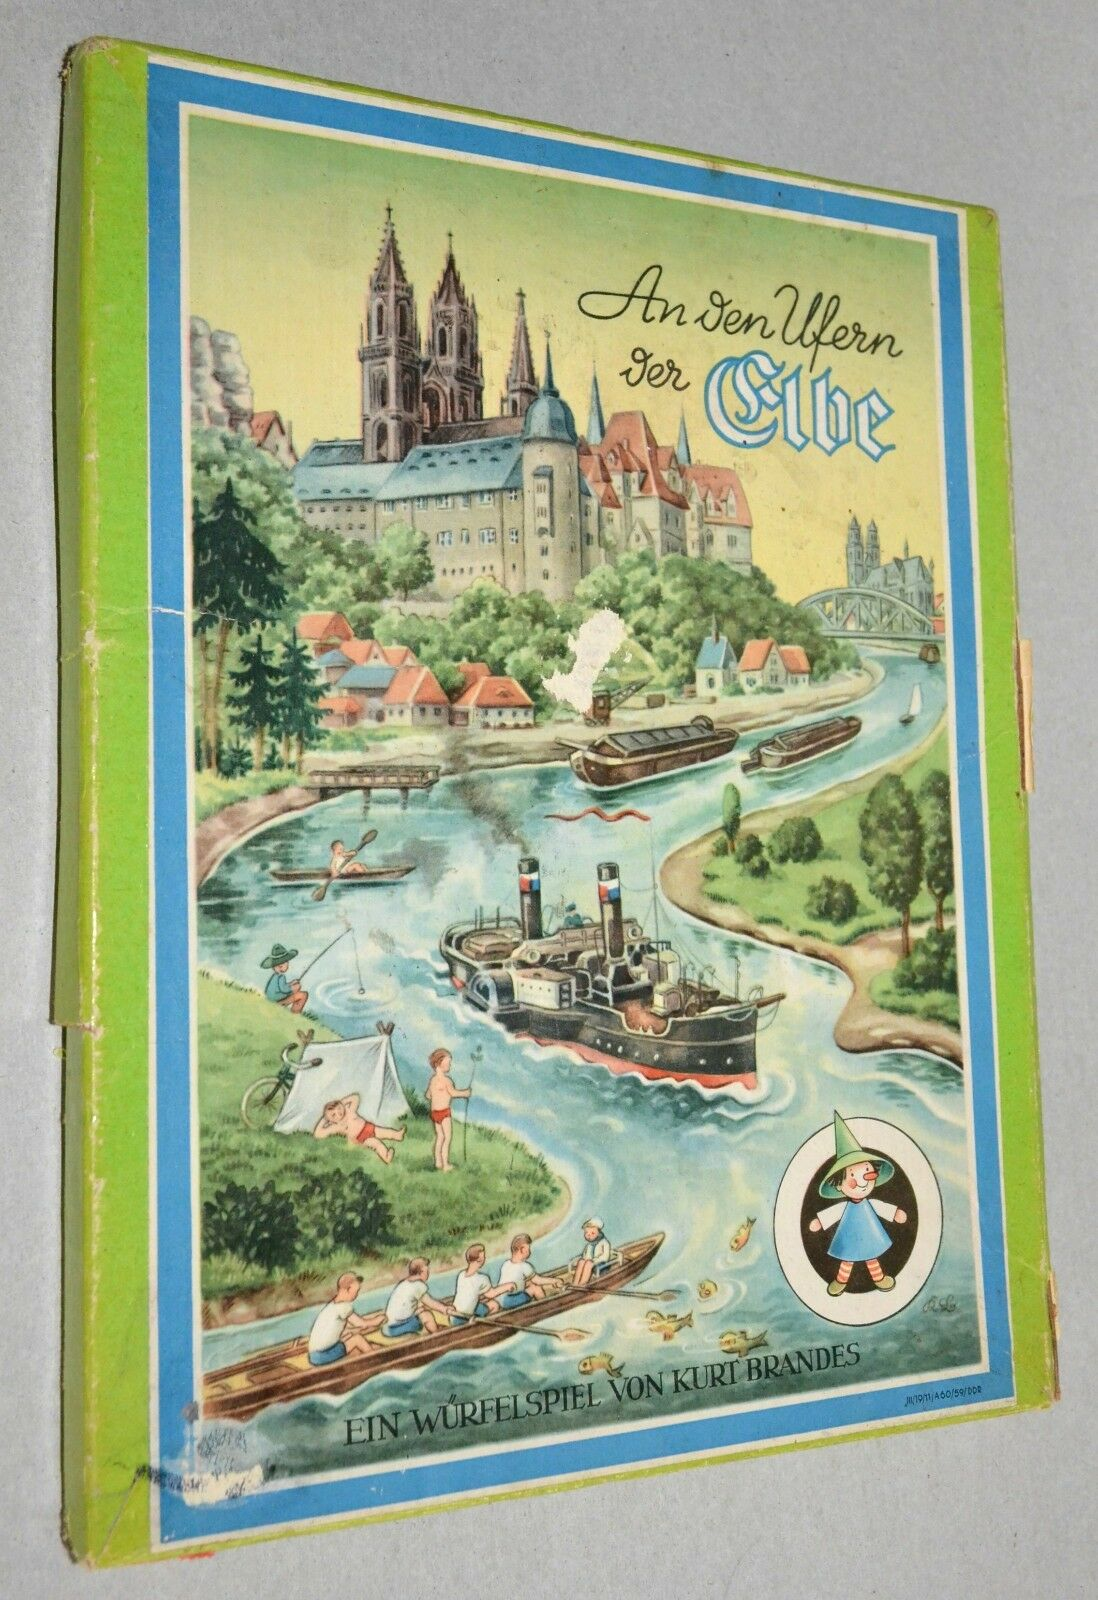 Antique German Board Game An den Ulfern der Elbe